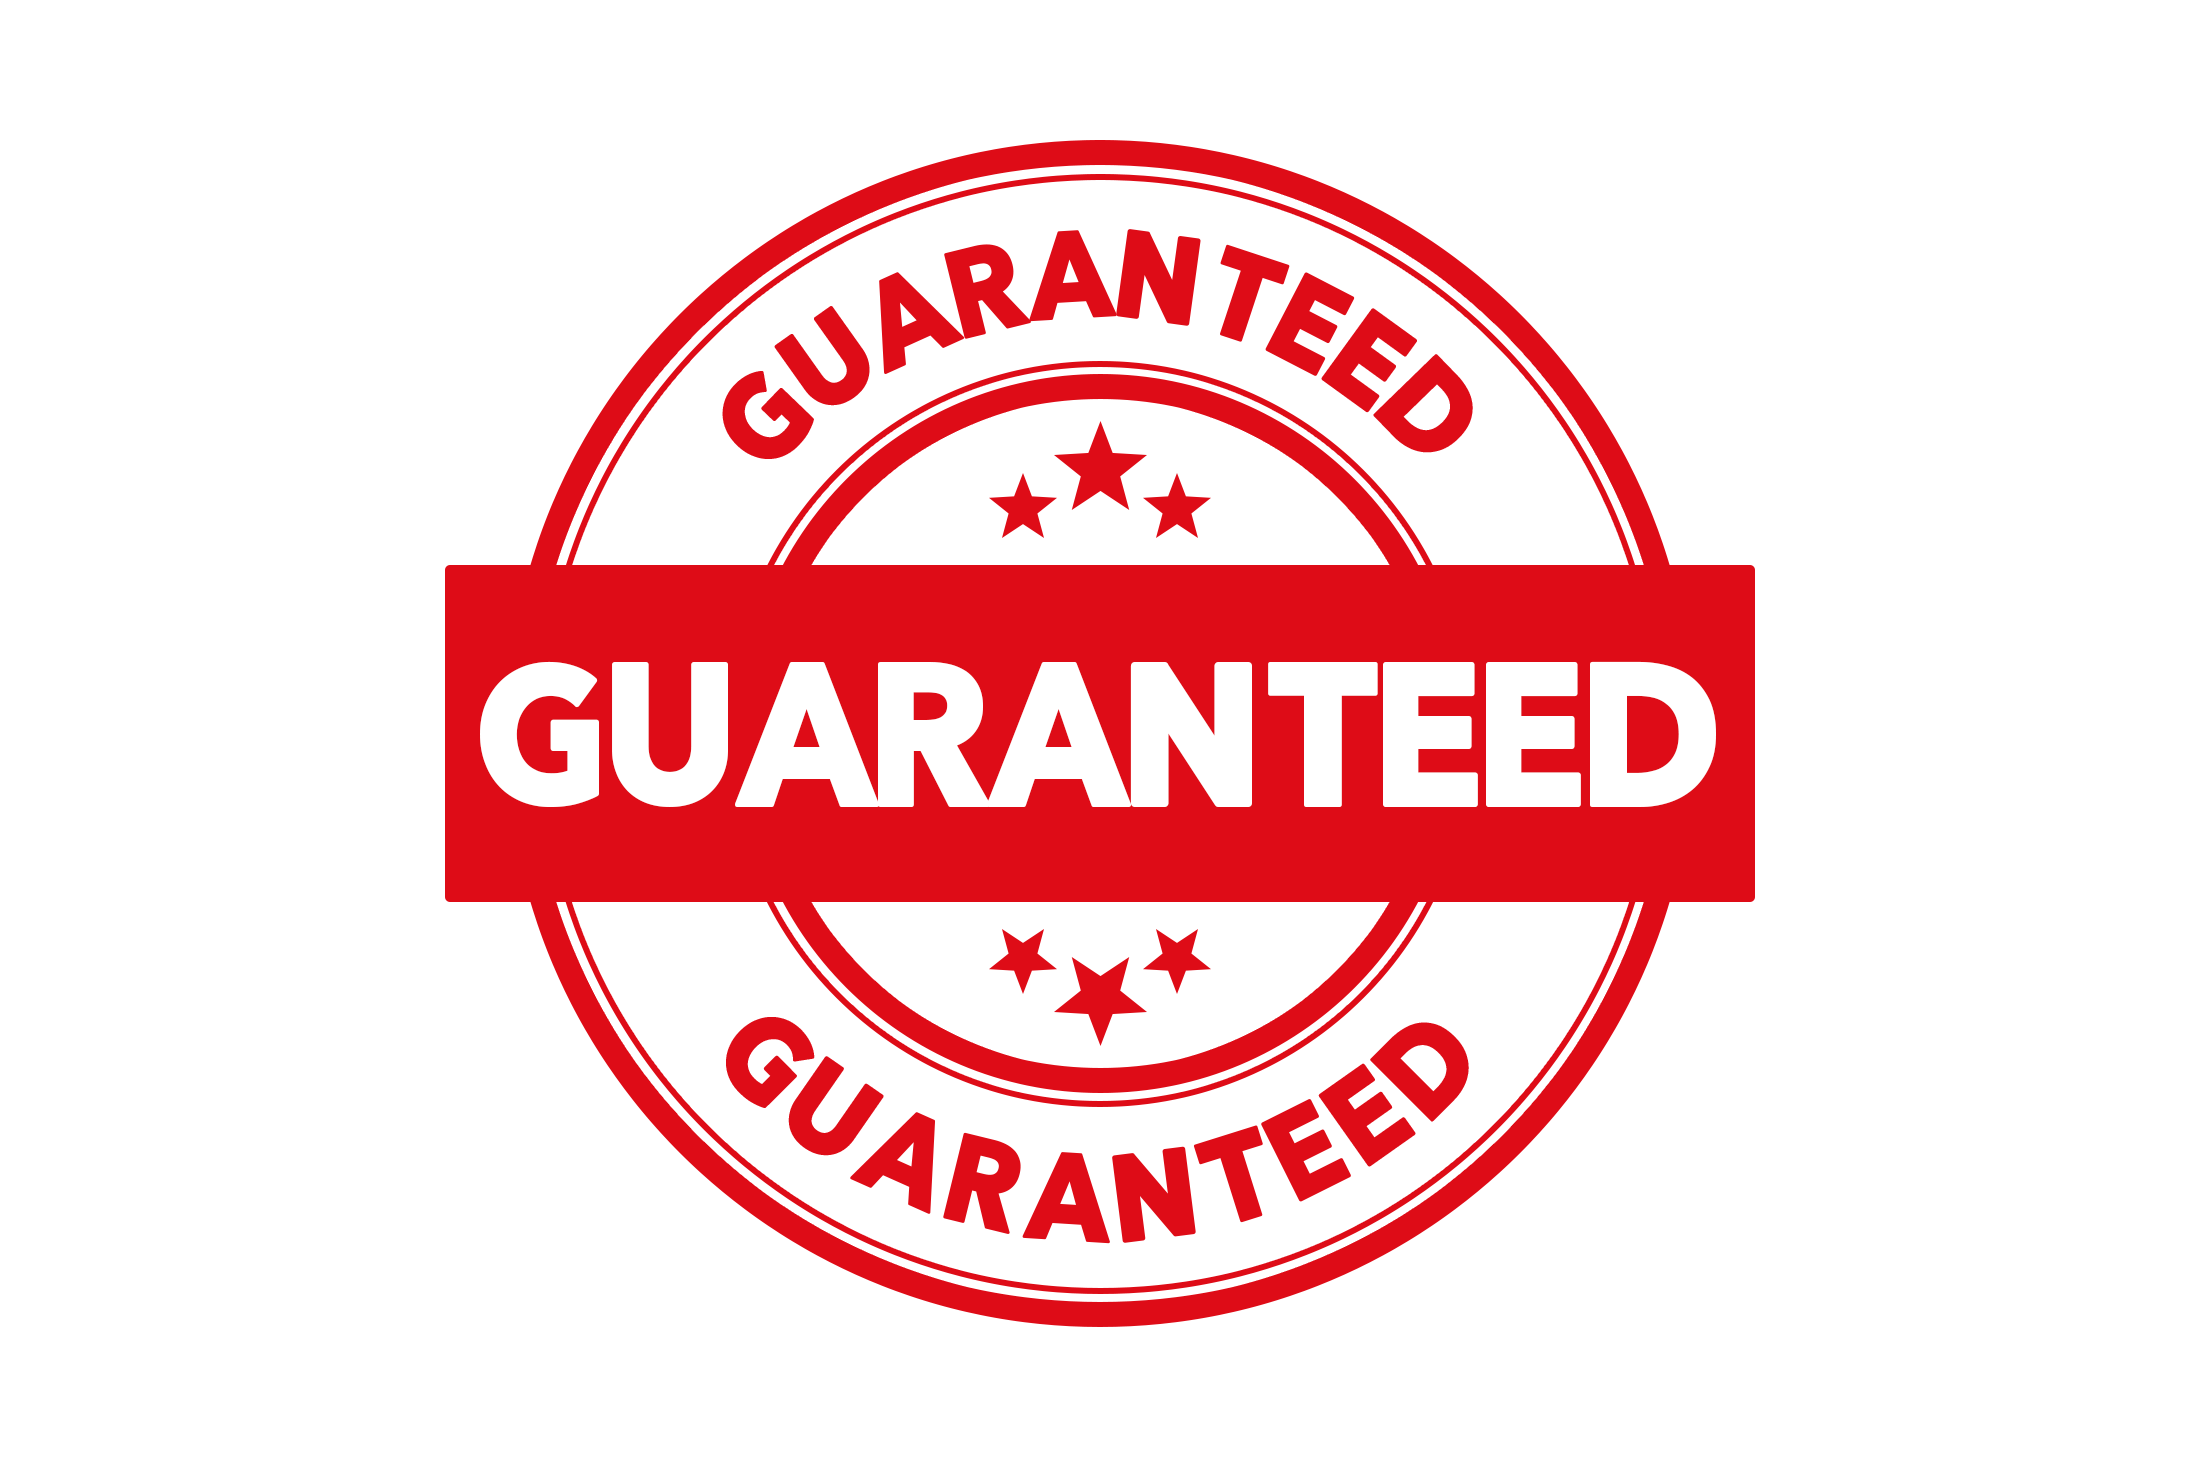 Round guaranteed stamp PSD